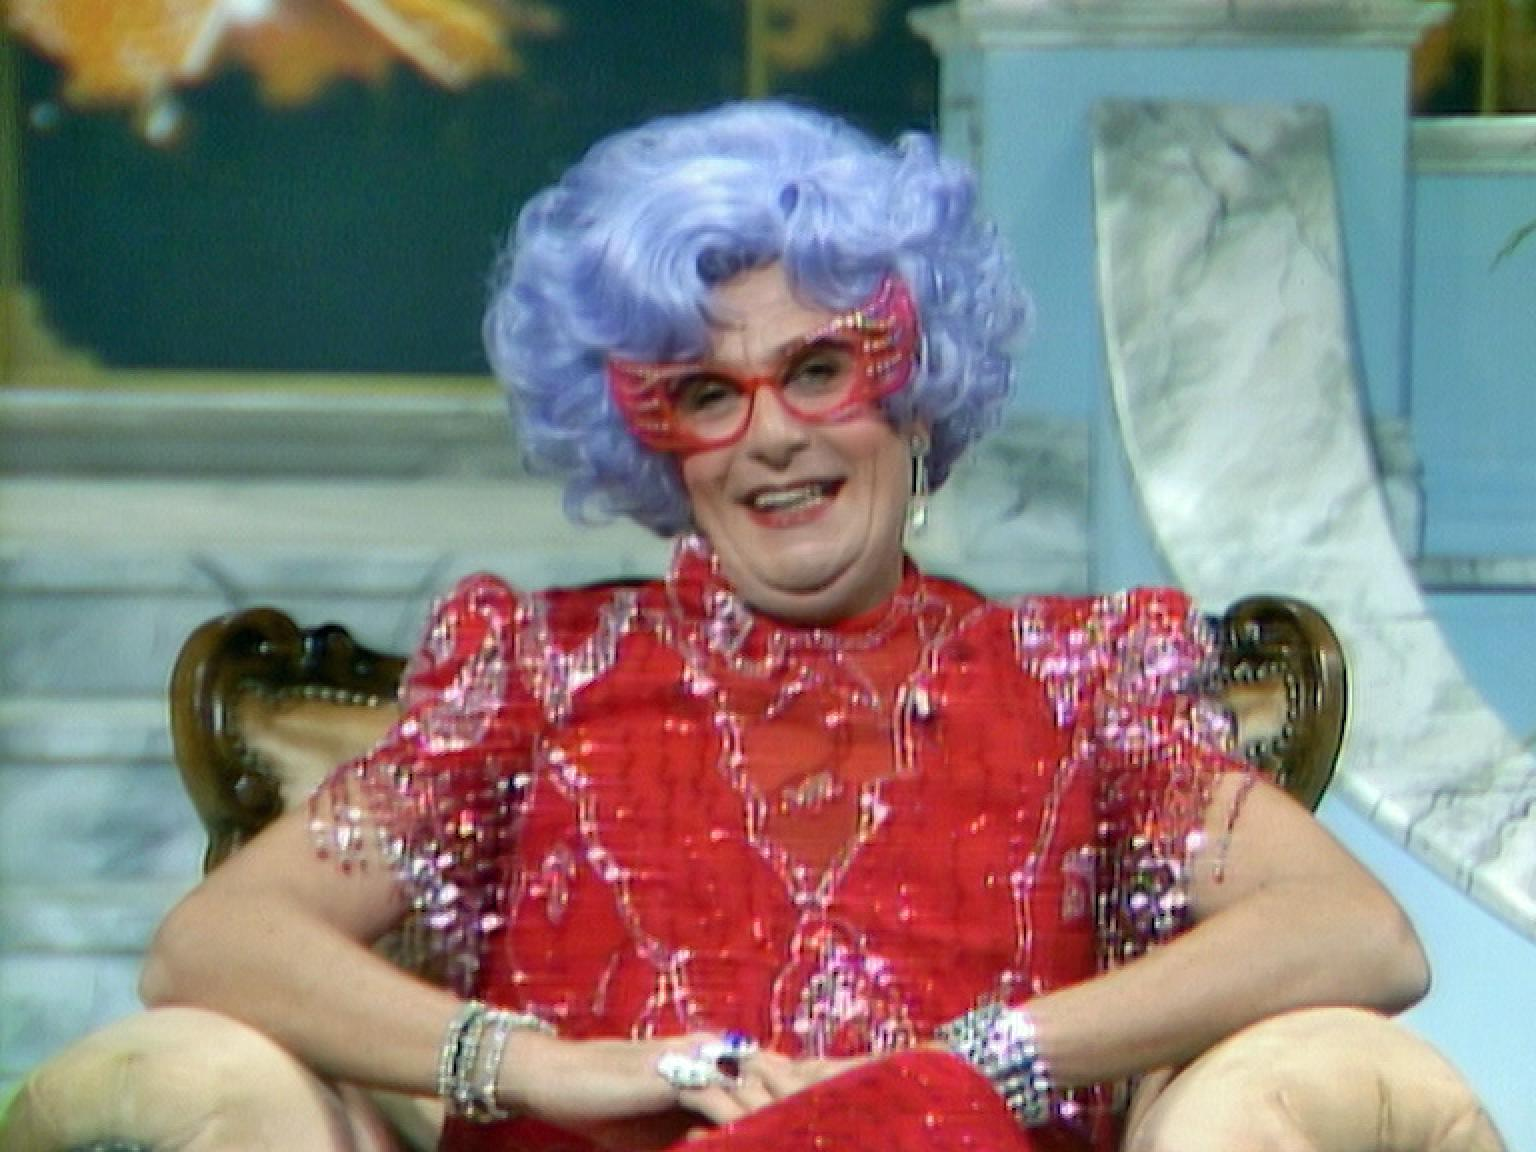 Dame Edna has a confiding look as she looks at the camera.